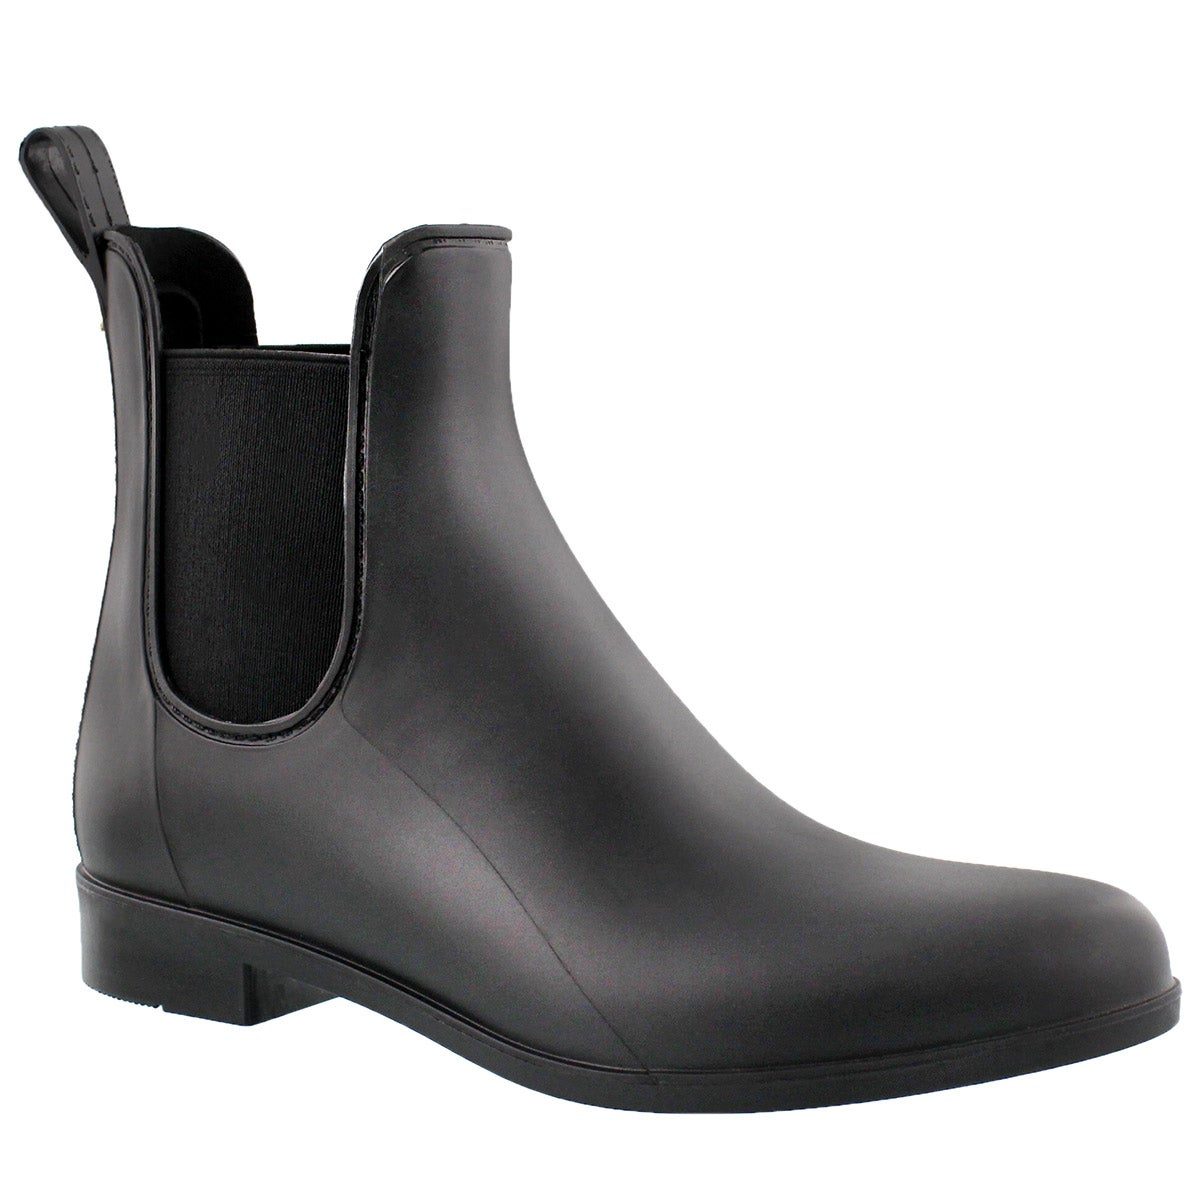 Lds Tinsley black matte rain boot